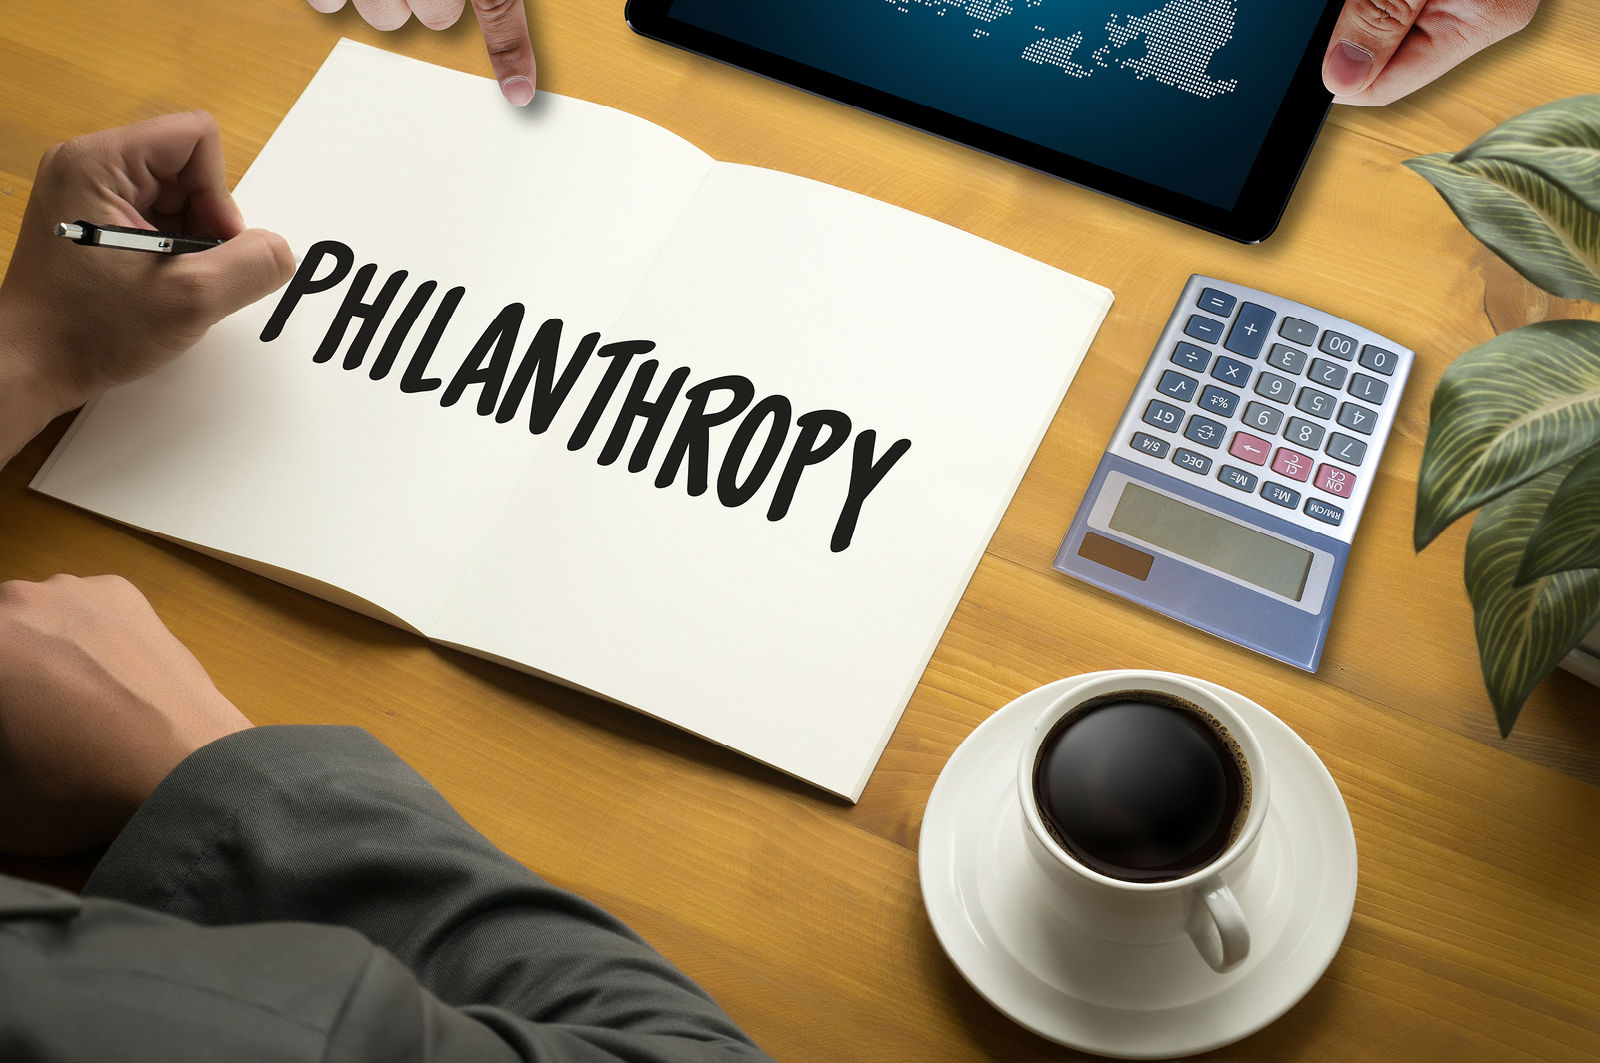 philanthropy reflections